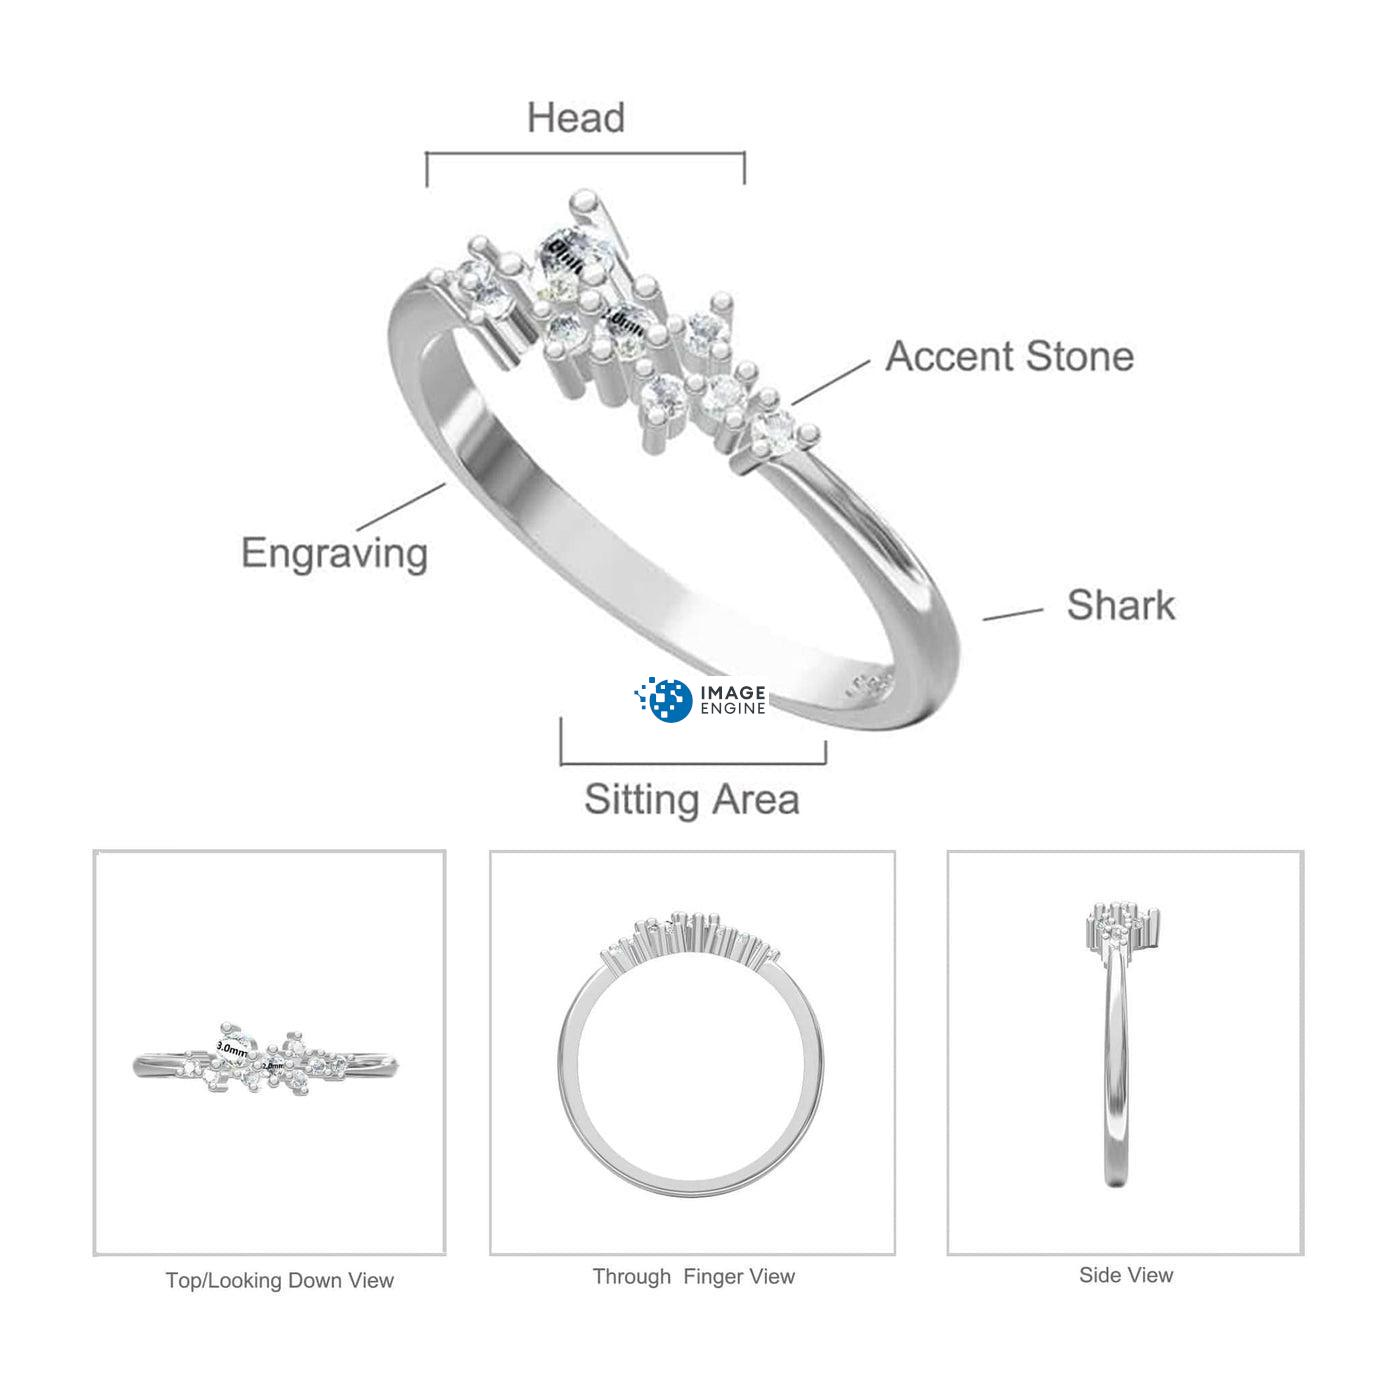 Sasha Sparkle Ring Diagram and Specifications